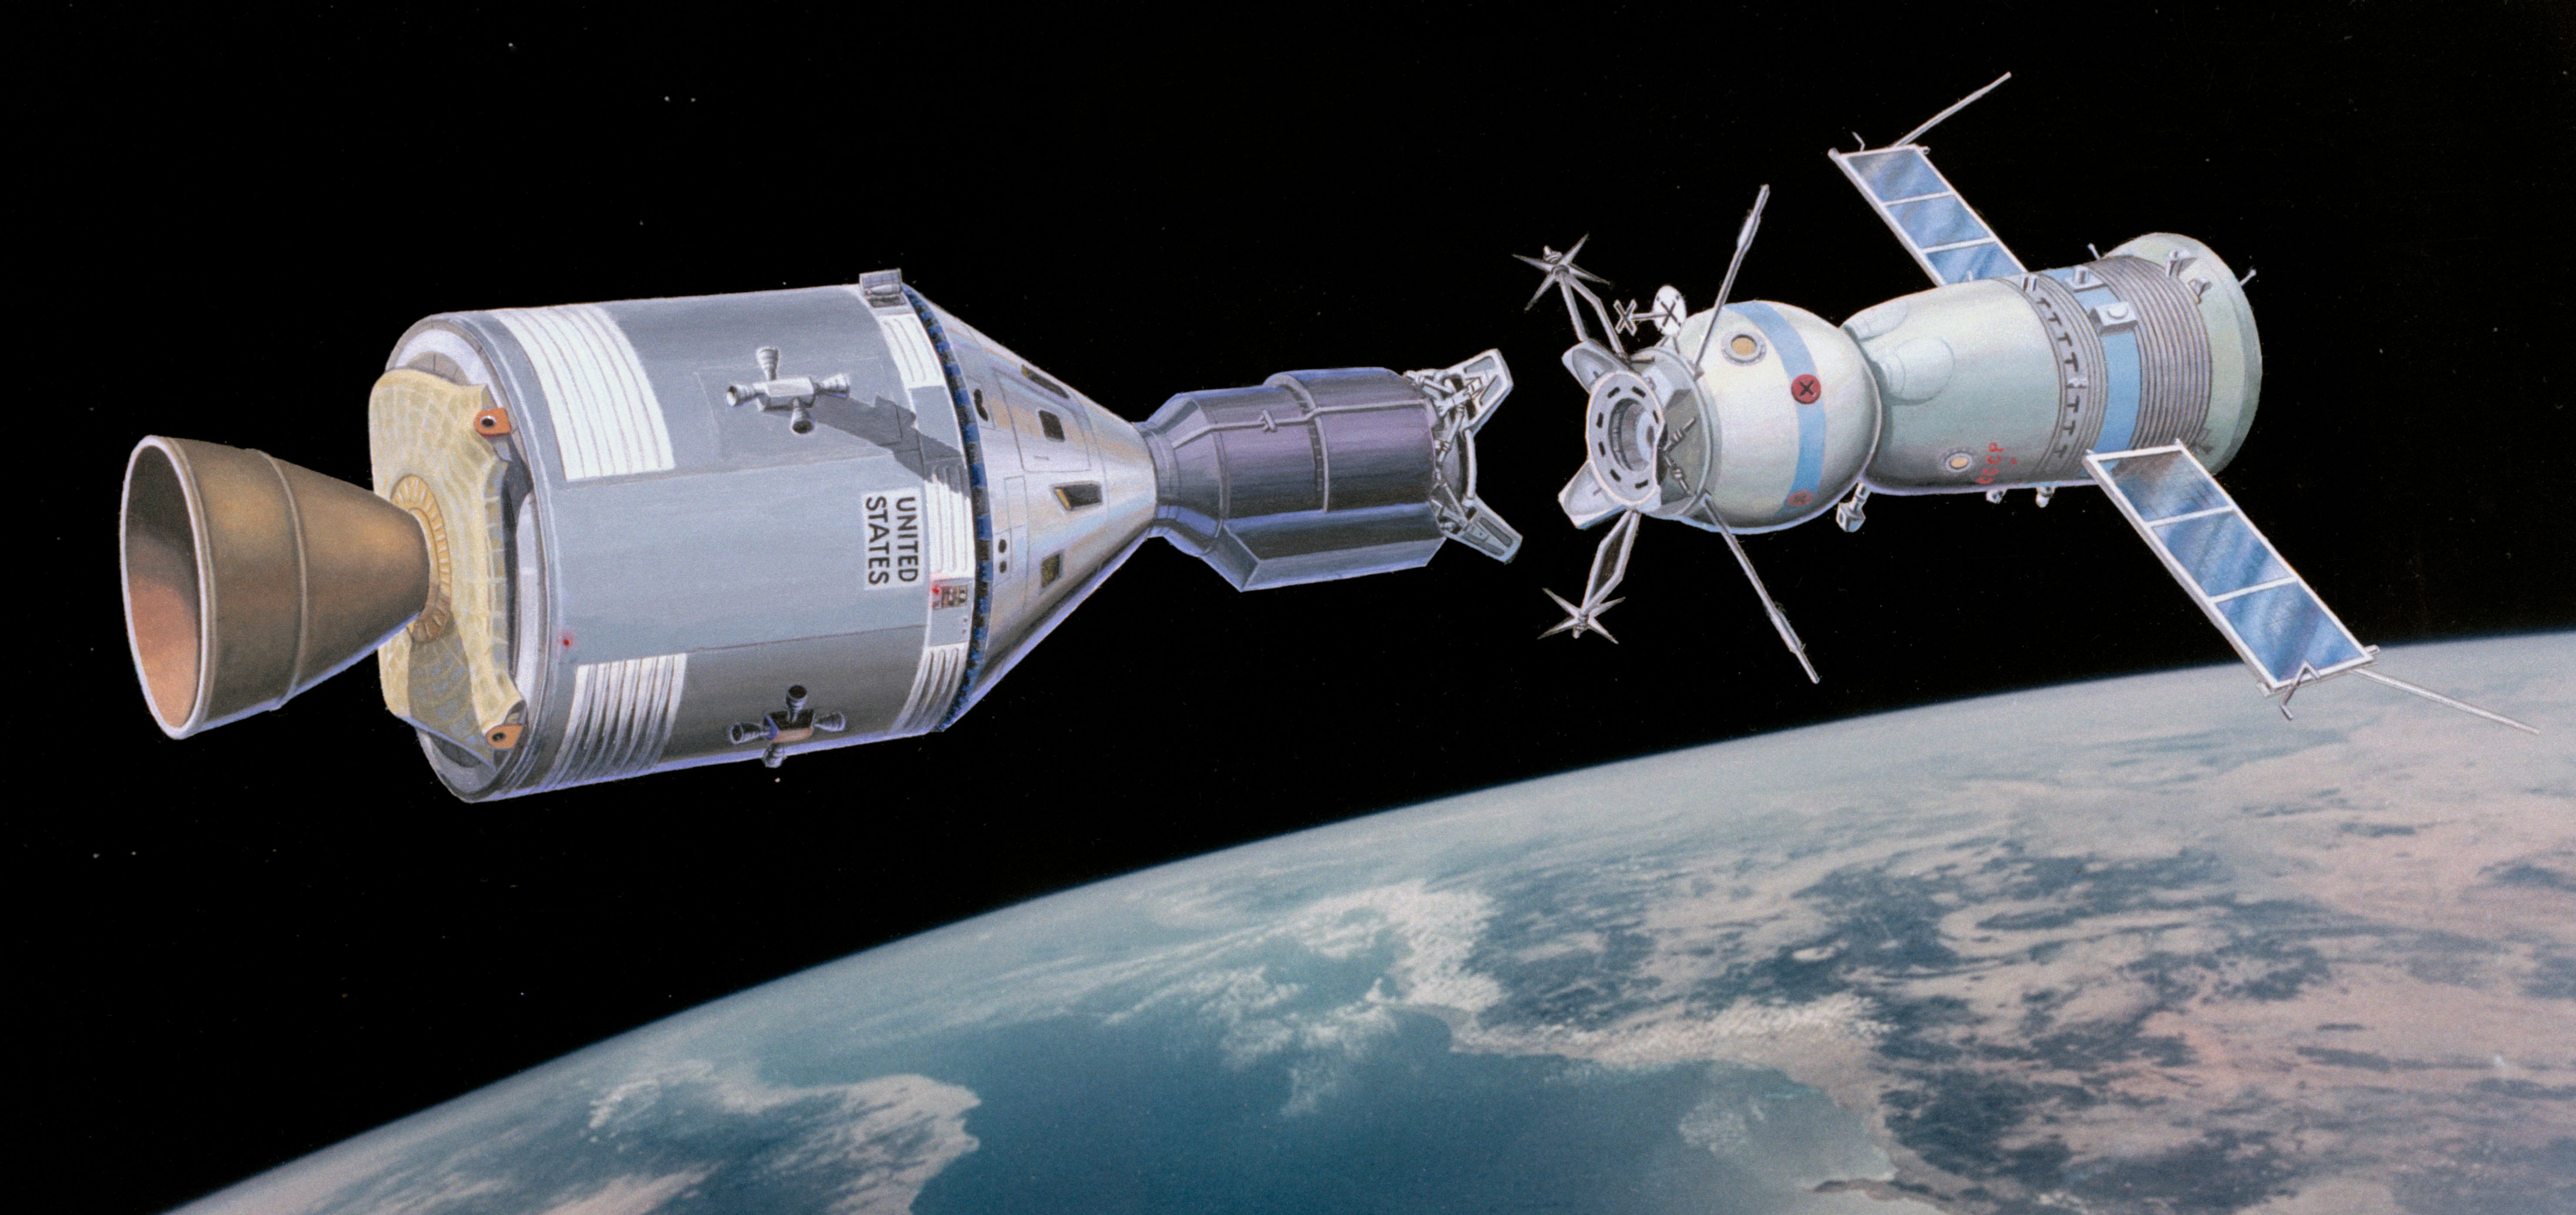 This artist's concept illustrates the Apollo-type spacecraft about to dock with a Soviet Soyuz-type spacecraft (right).